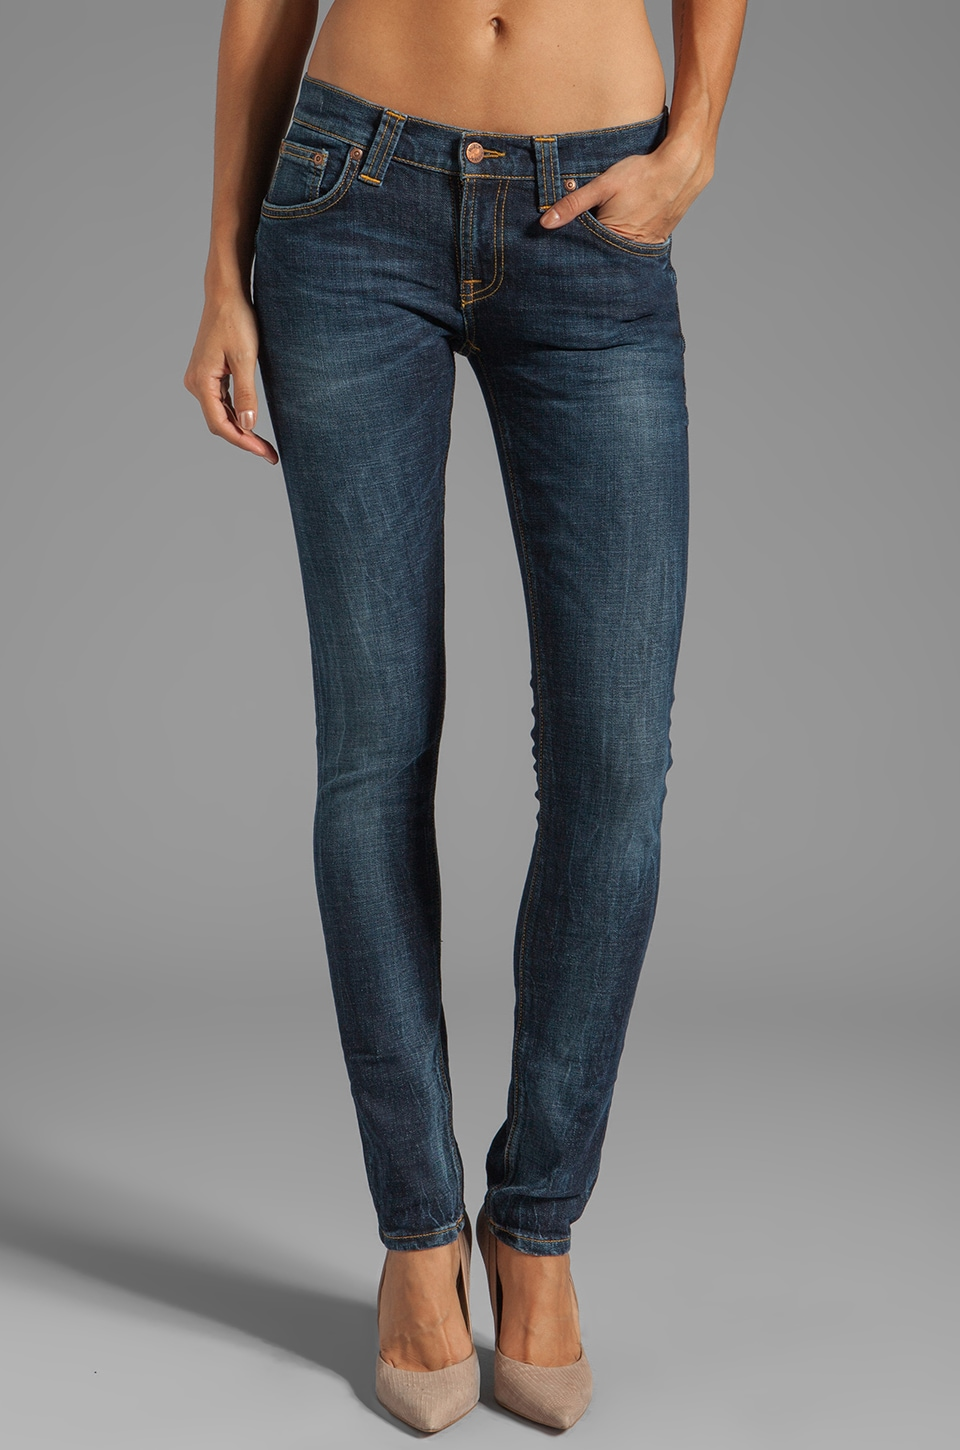 Nudie Jeans Tight Long John in Org Calm Blues